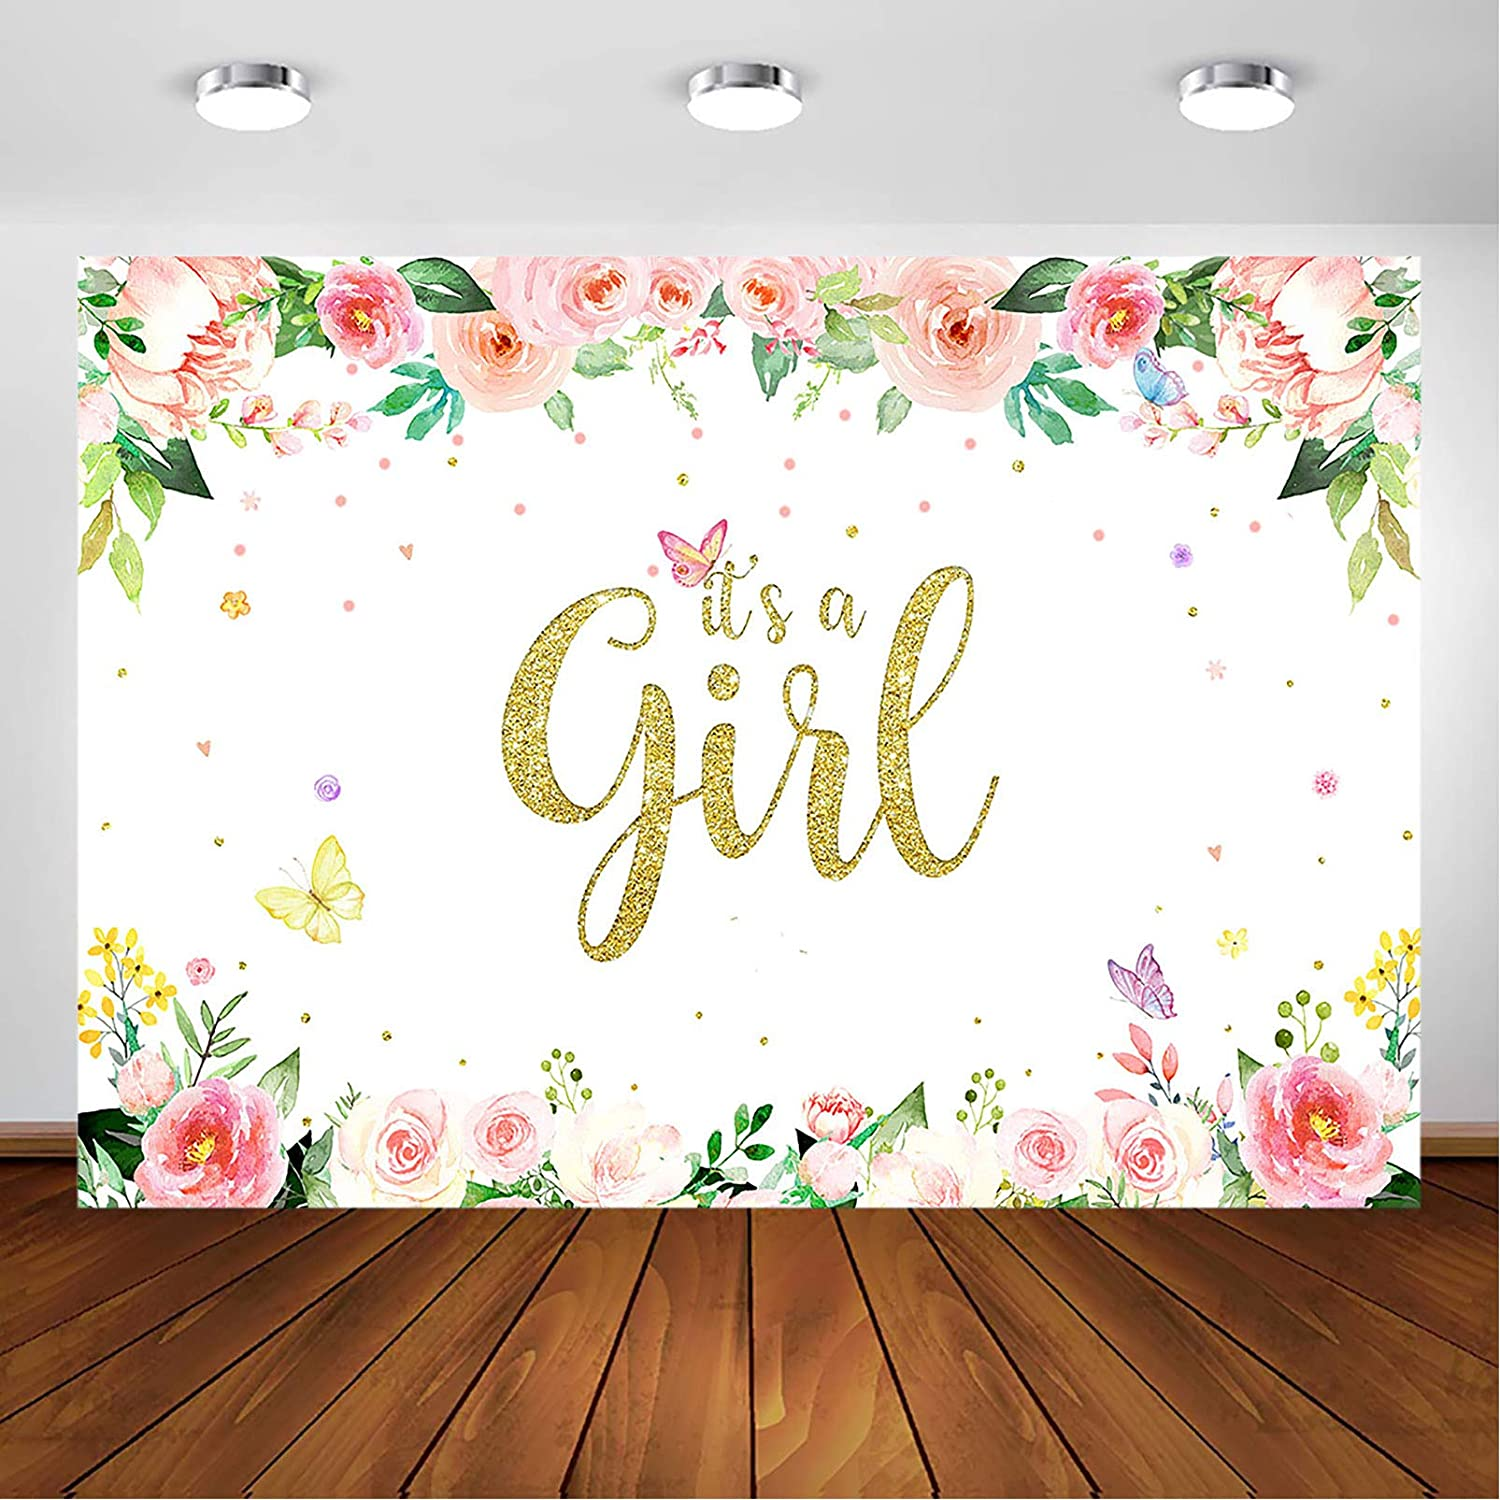 10x6.5ft Pastel Pink Girl Baby Shower Backdrop Polyester Warm Pink Polka Dot Cushion Plain Wooden Board Red Checked Cloth Rustic Yellow Plank Background Girl Newborn Artistic Portrait Shoot